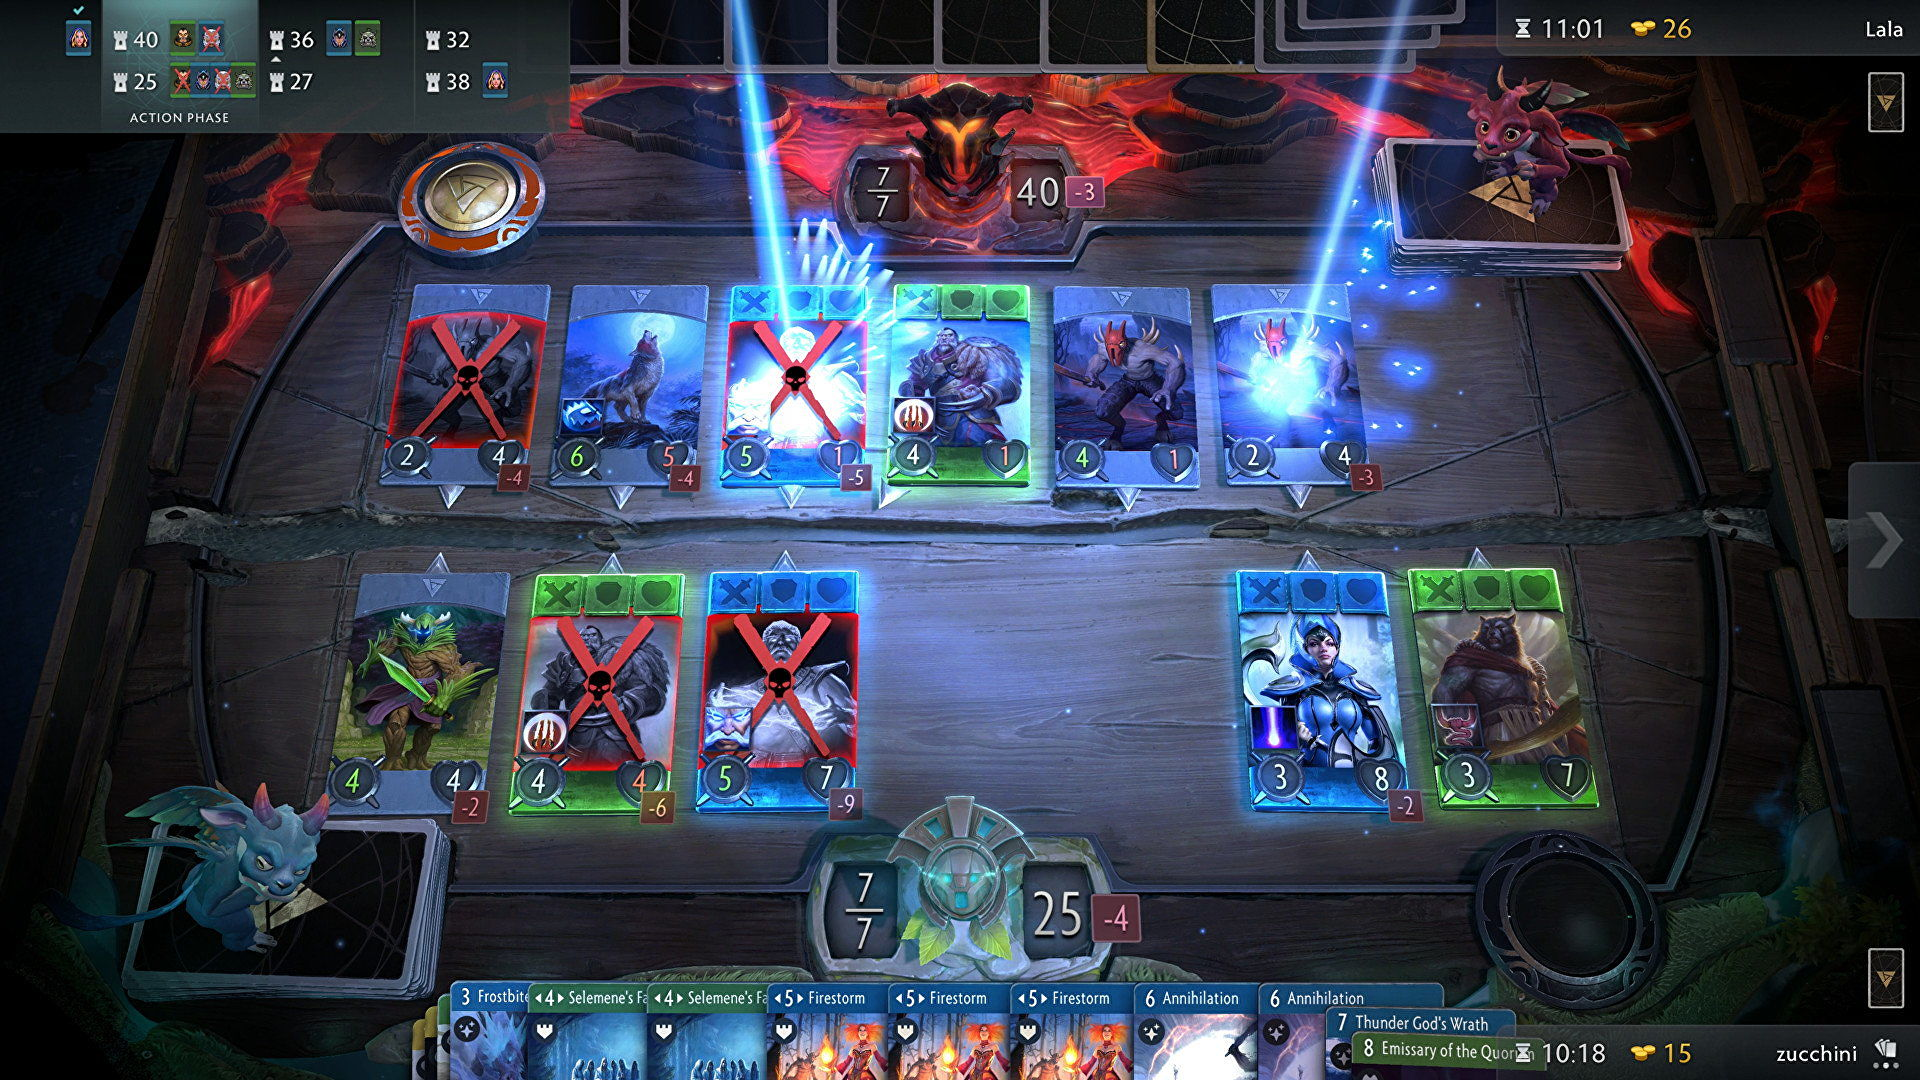 Artifact development has stopped - and so now it's free